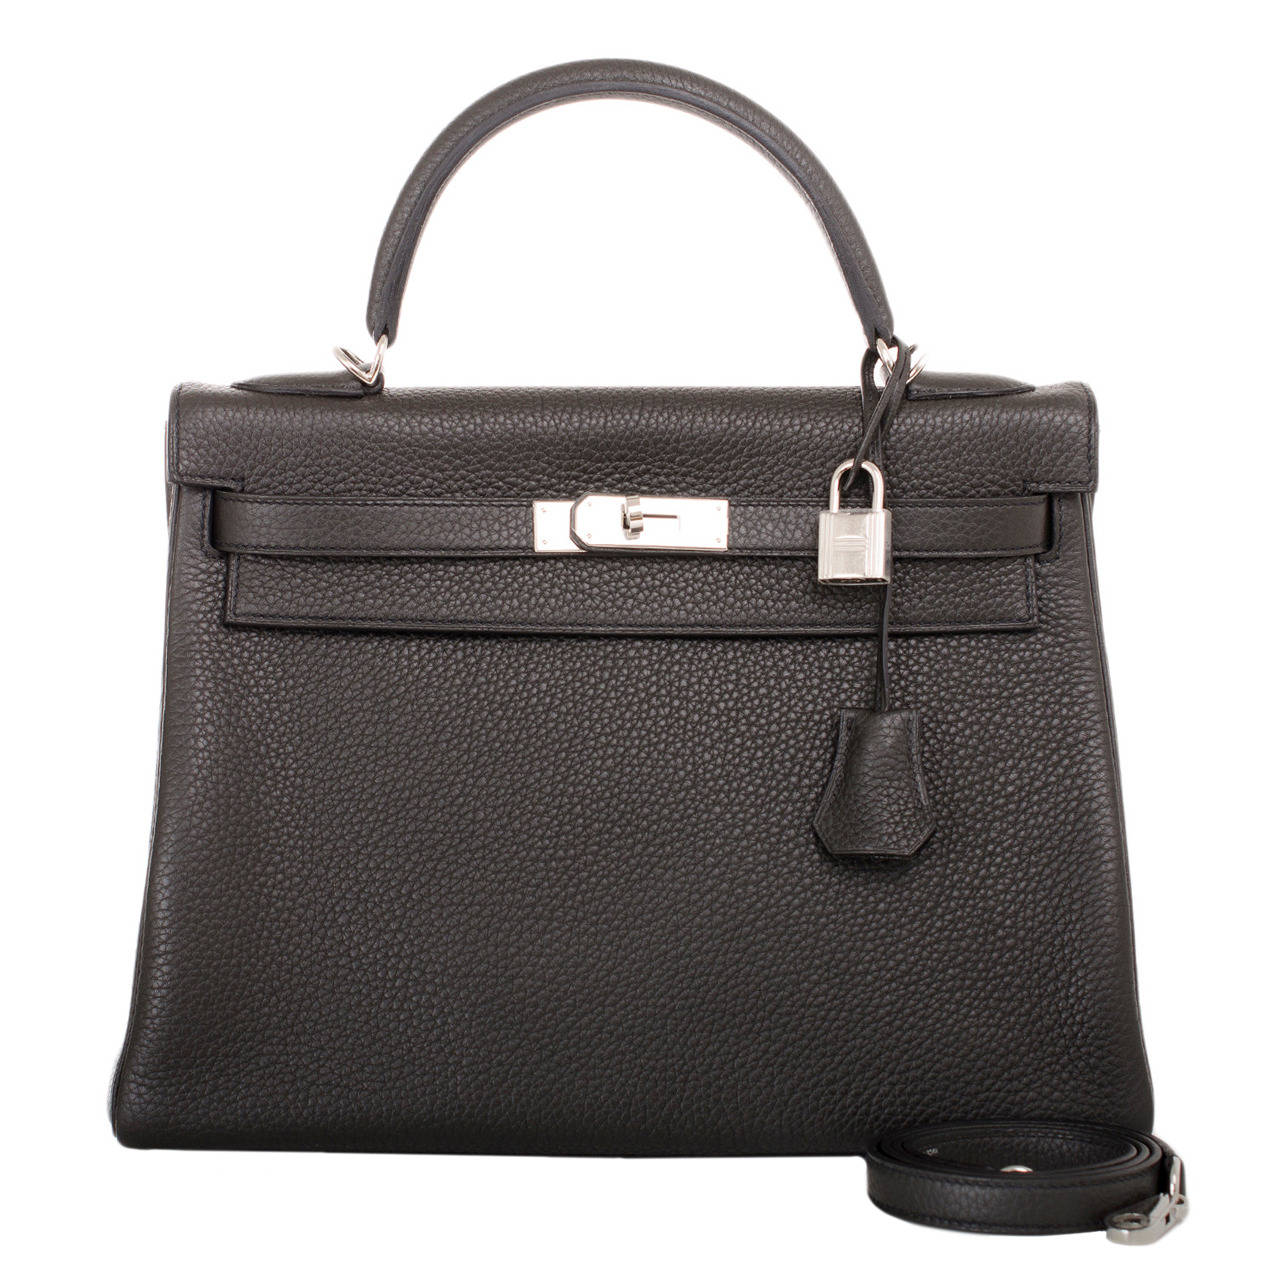 Hermes Birkin Prices Usa Europe Pursebop Jpg 1280x1280 How Much Are Armez Bags